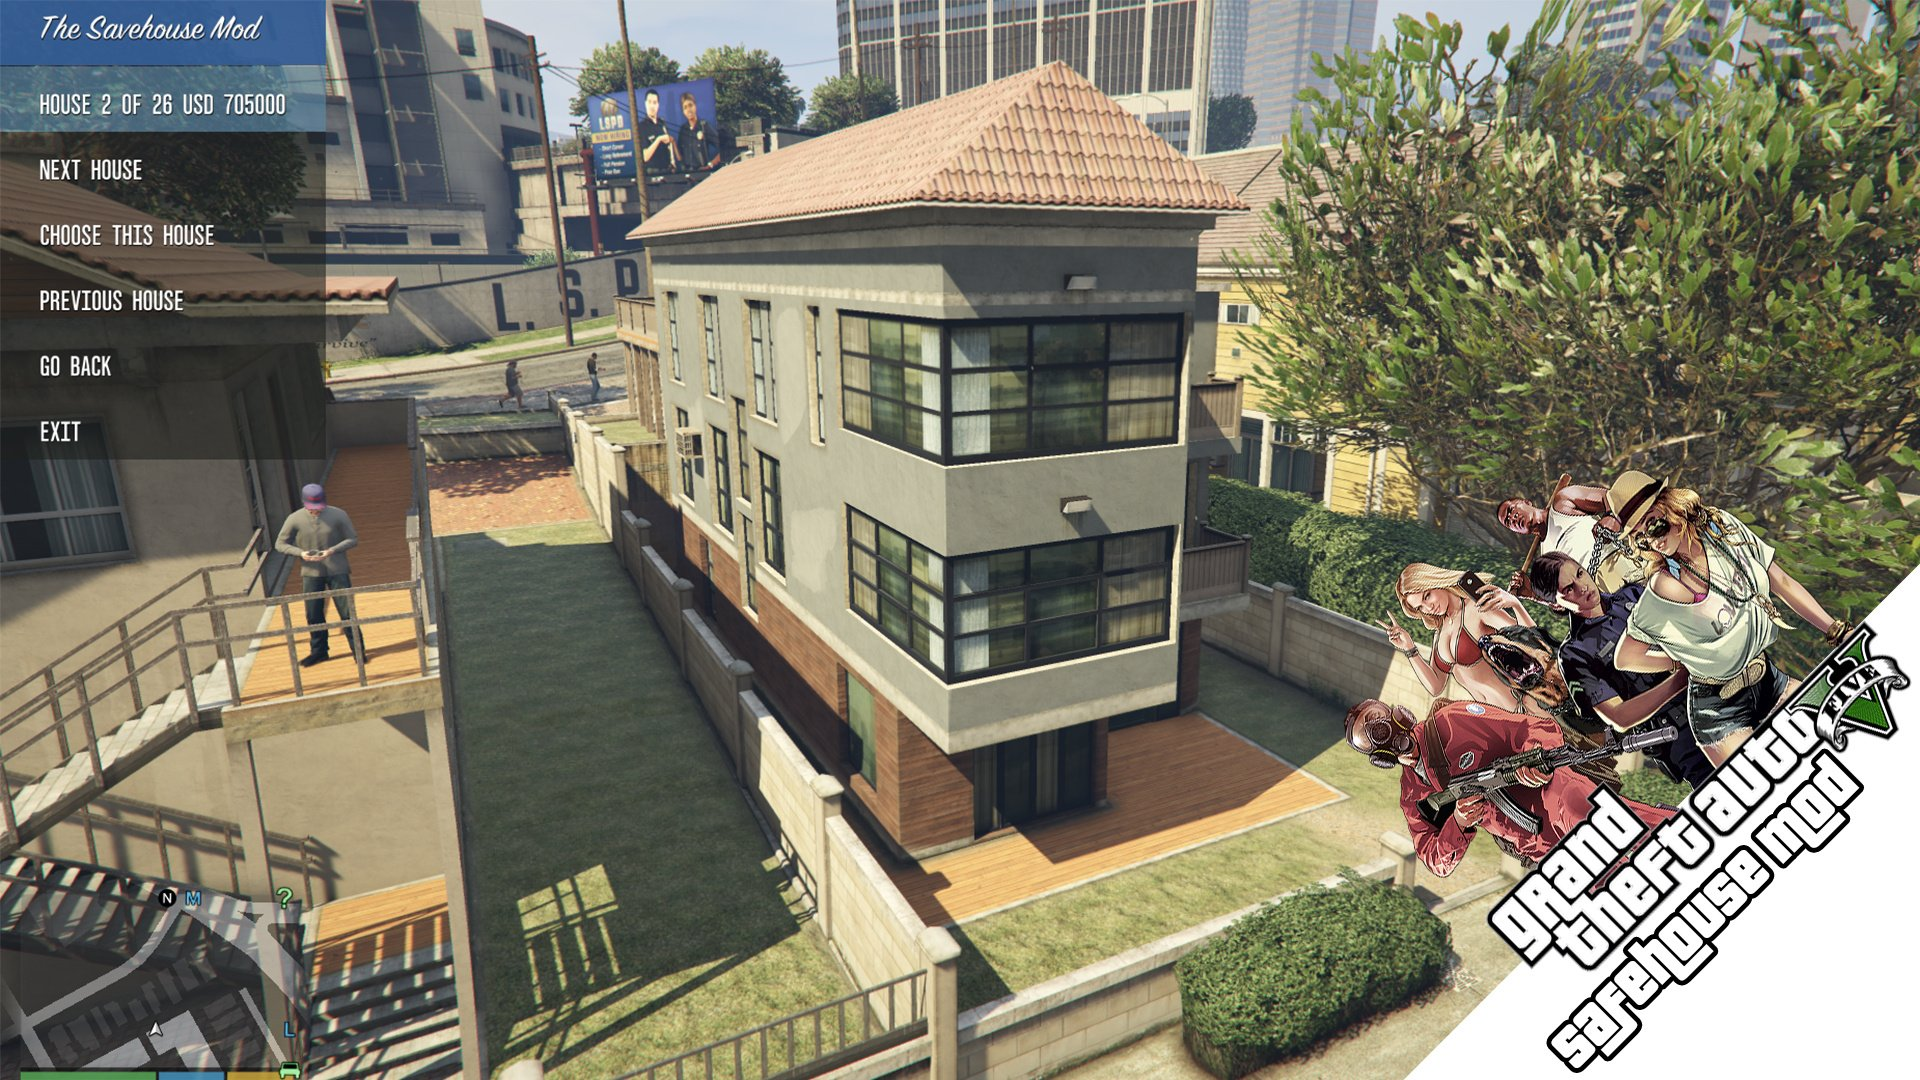 gta online characters share apartment